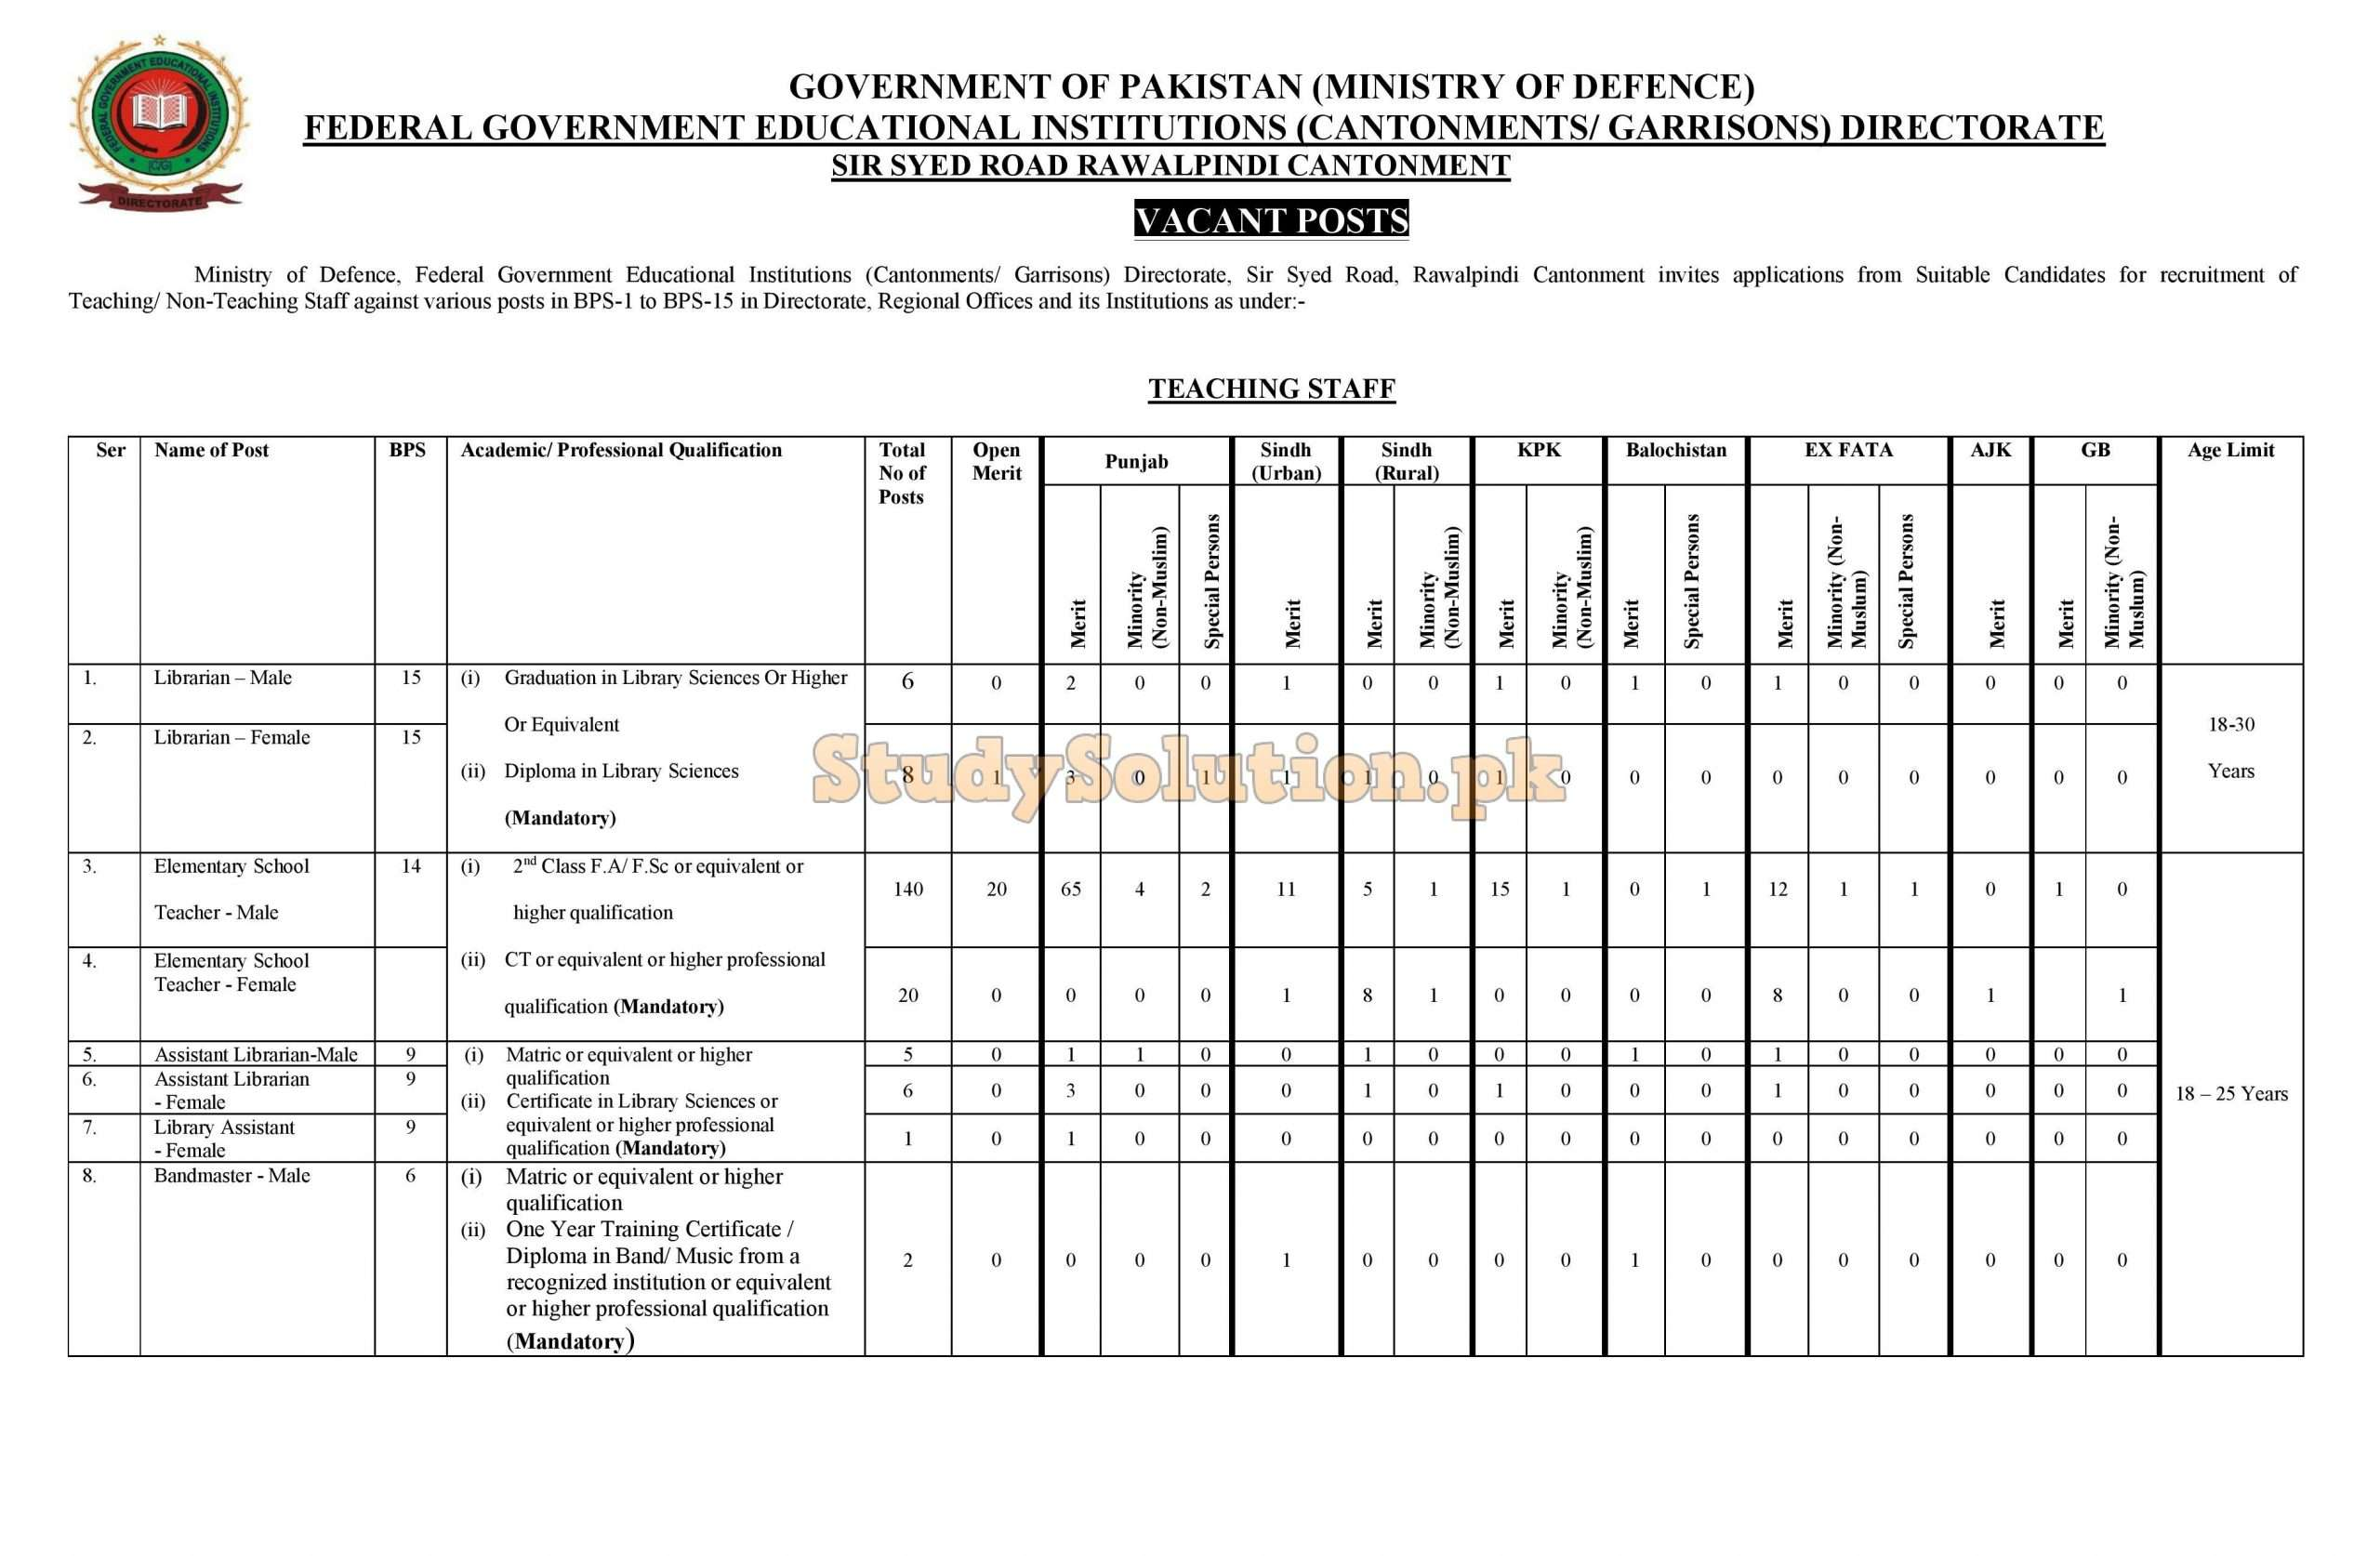 Govt Of Pakistan Federal Government Educational Institution Jobs 2021